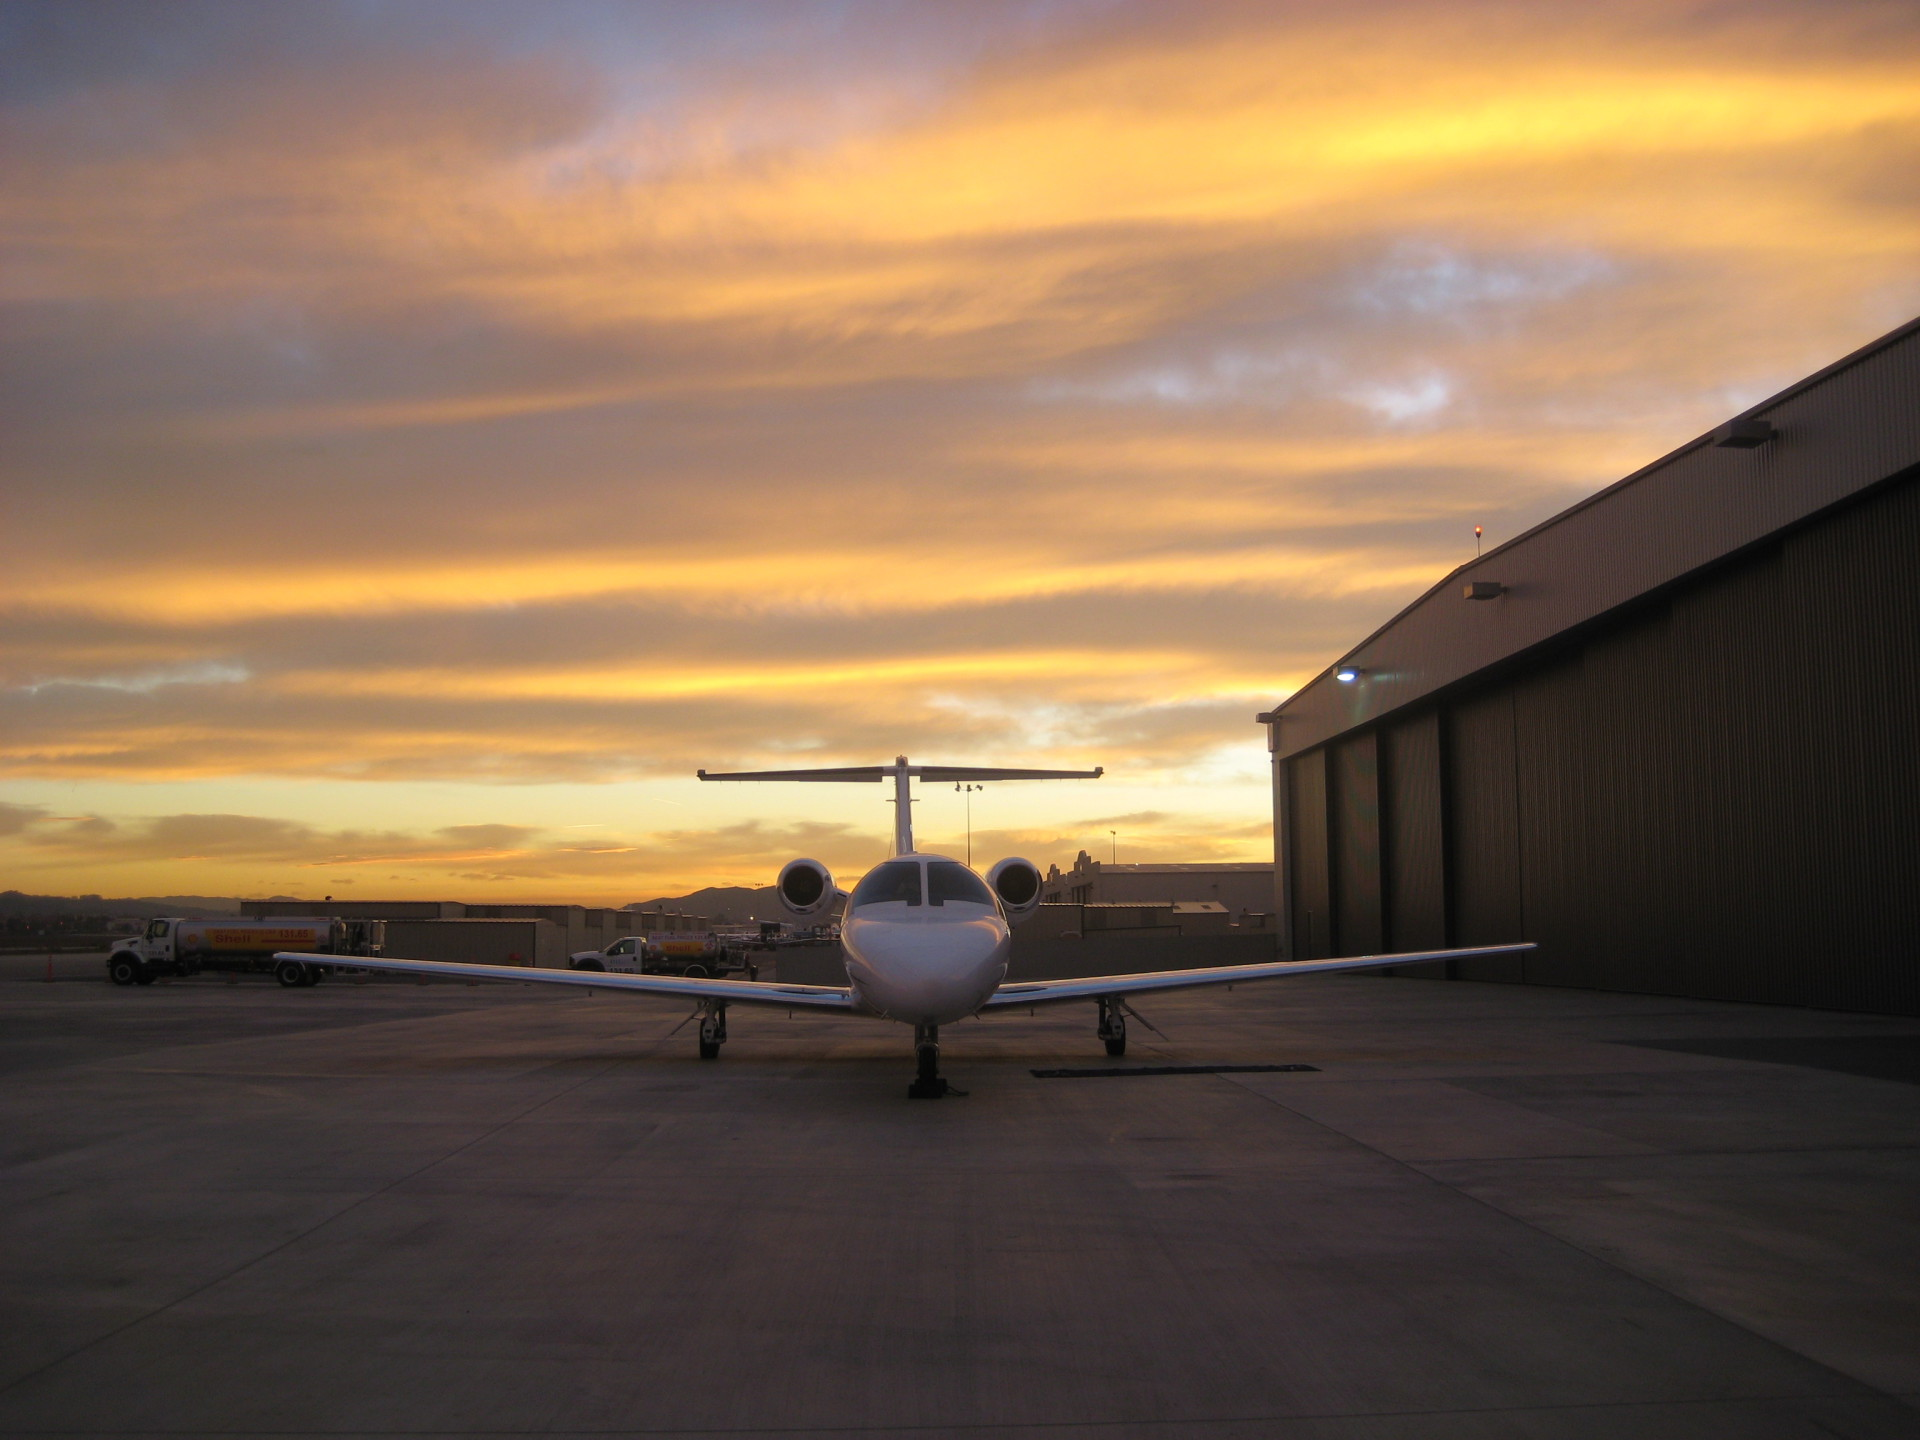 Private Jet Aviation Infrastructure Development by Ginger Goodspeed Pearson of Luminary Advisors